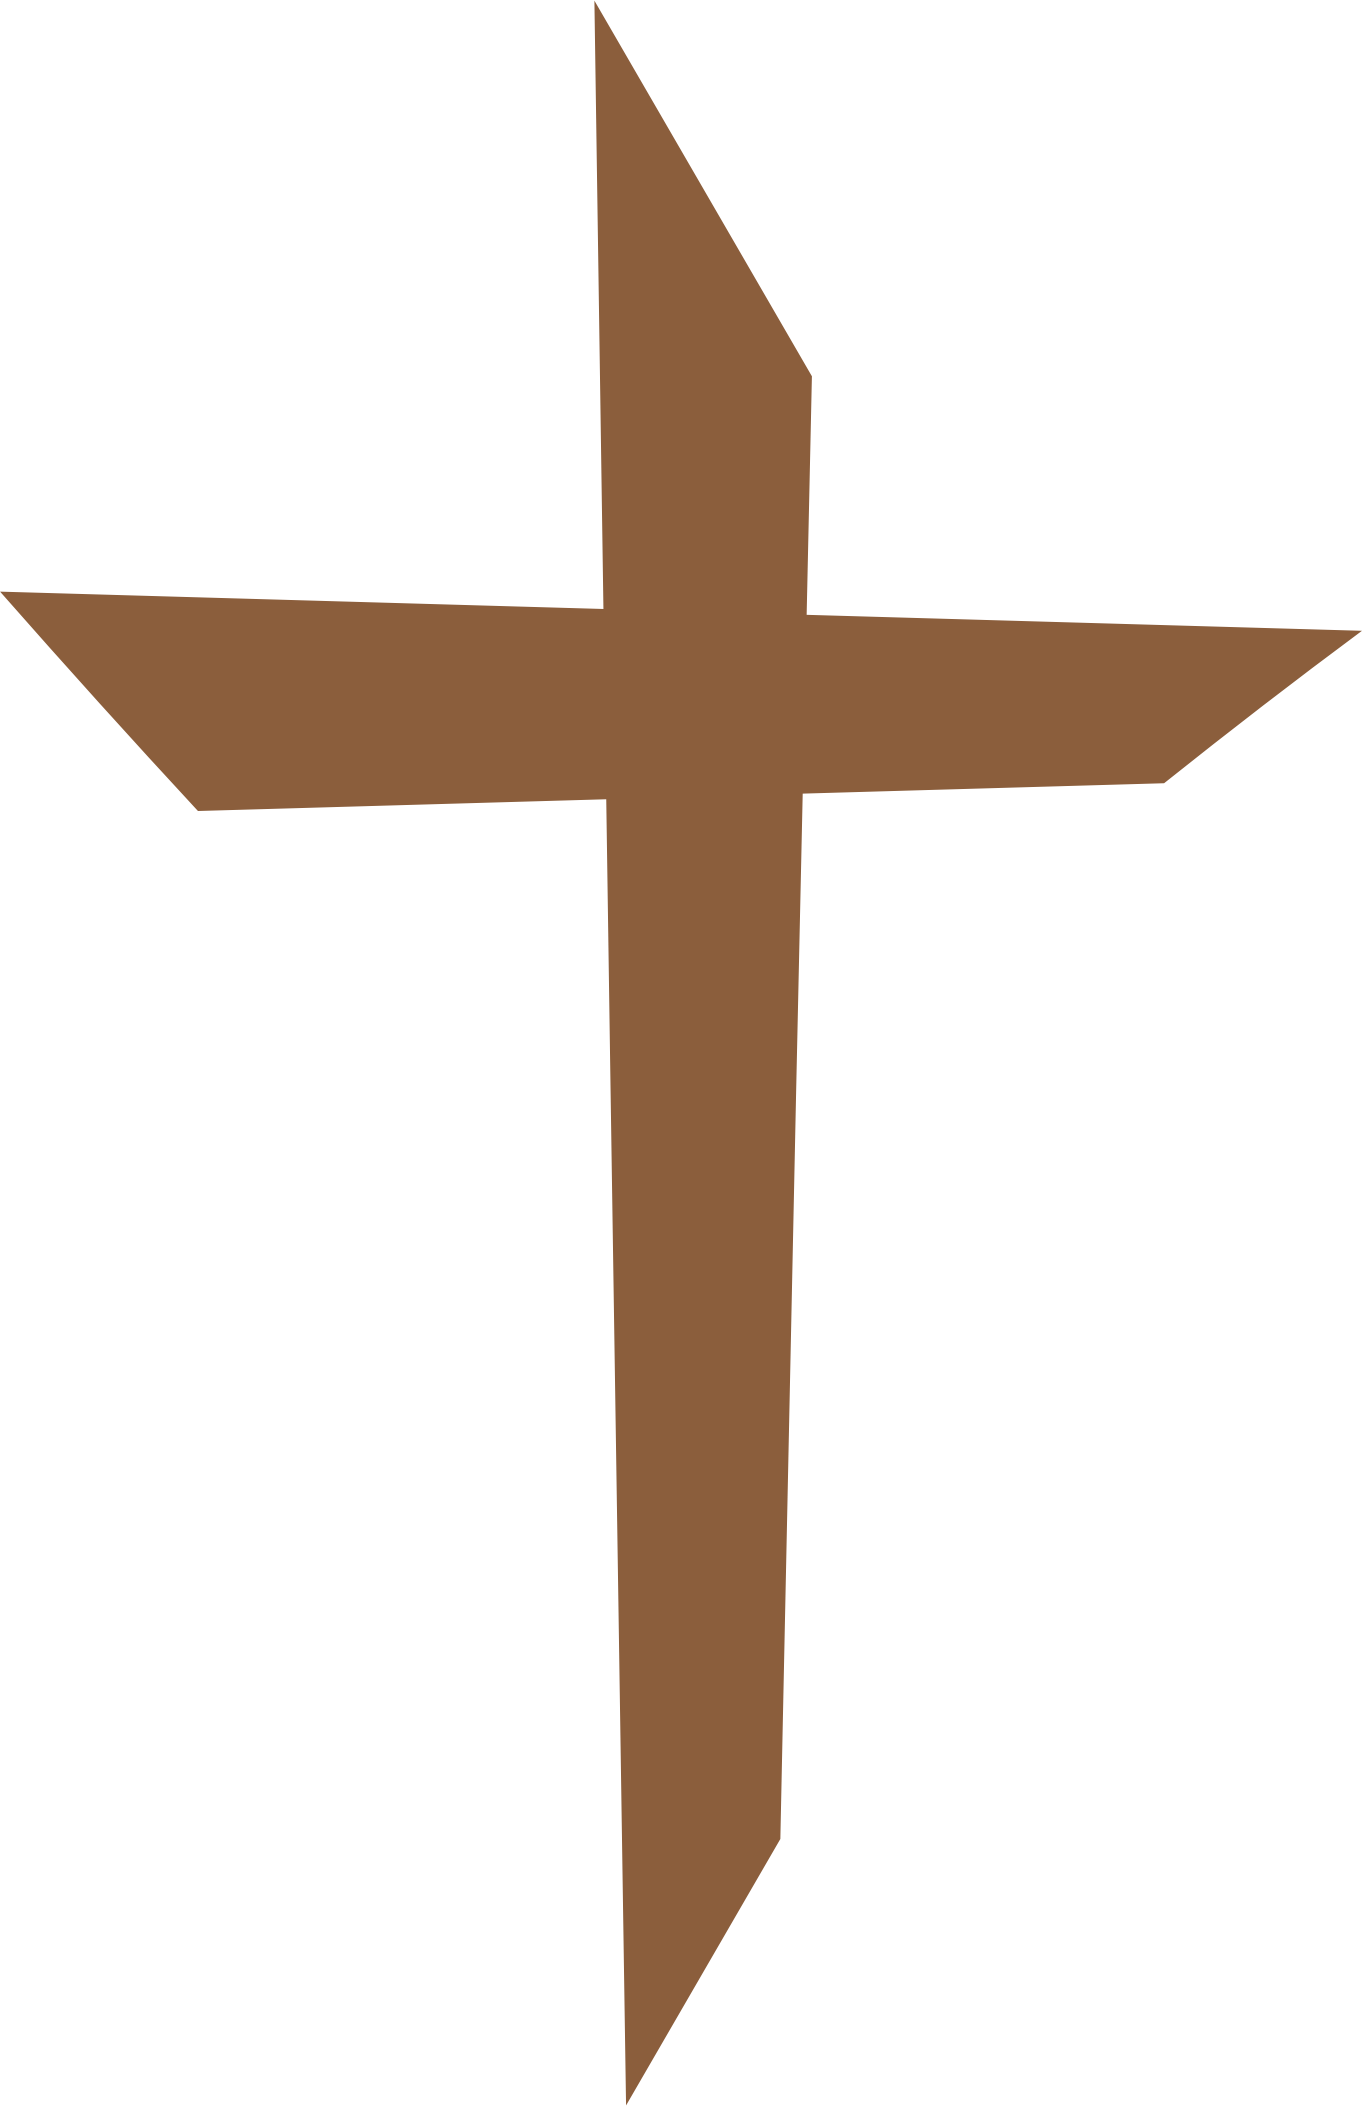 Christian Cross Clipart at GetDrawings.com | Free for personal use ... png stock